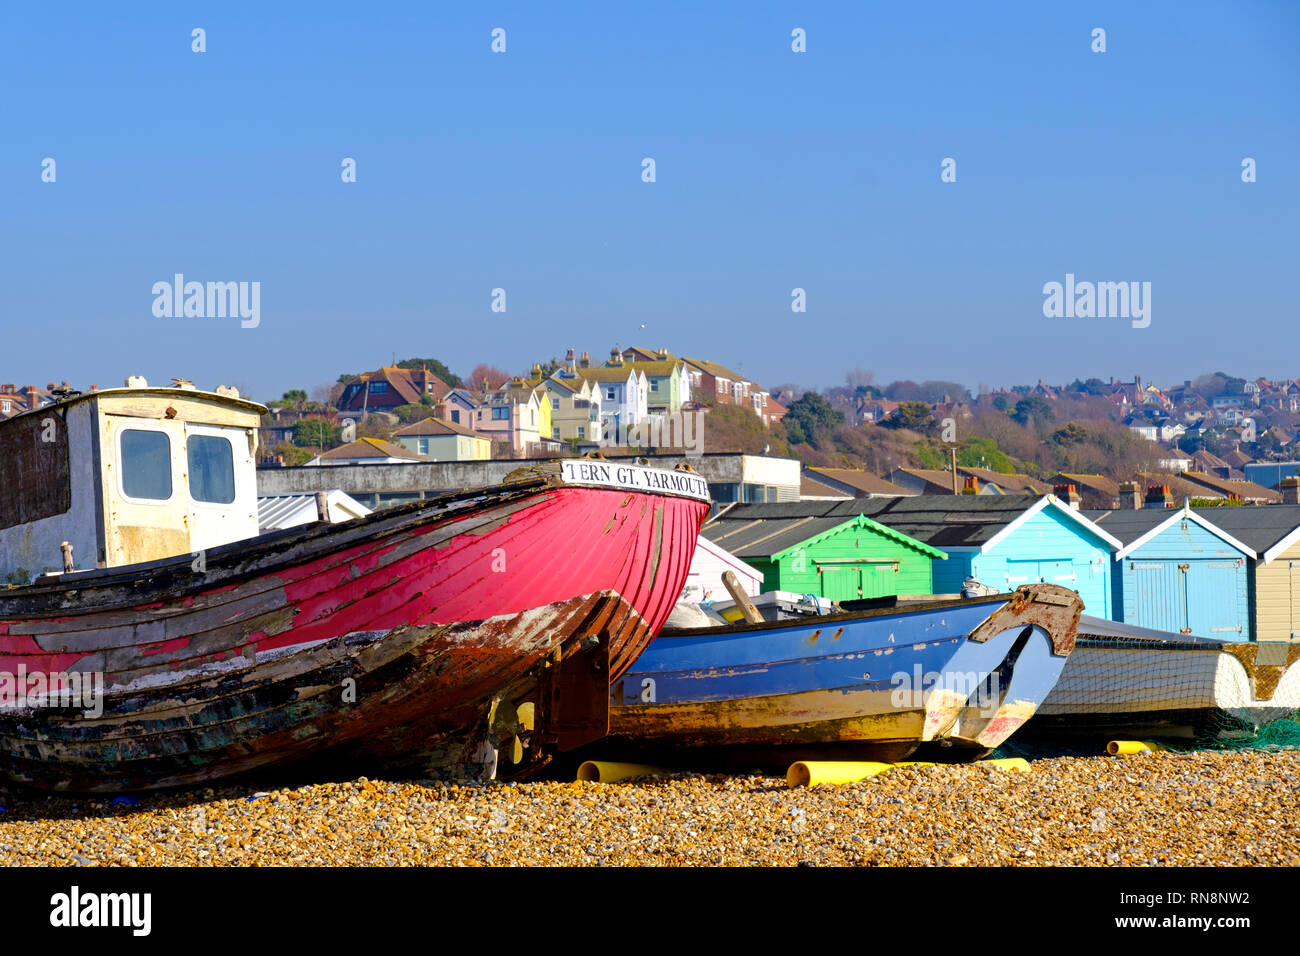 Old fishing boats and beach huts on the Bulverhythe beach, West St Leonards, East Sussex. UK Stock Photo